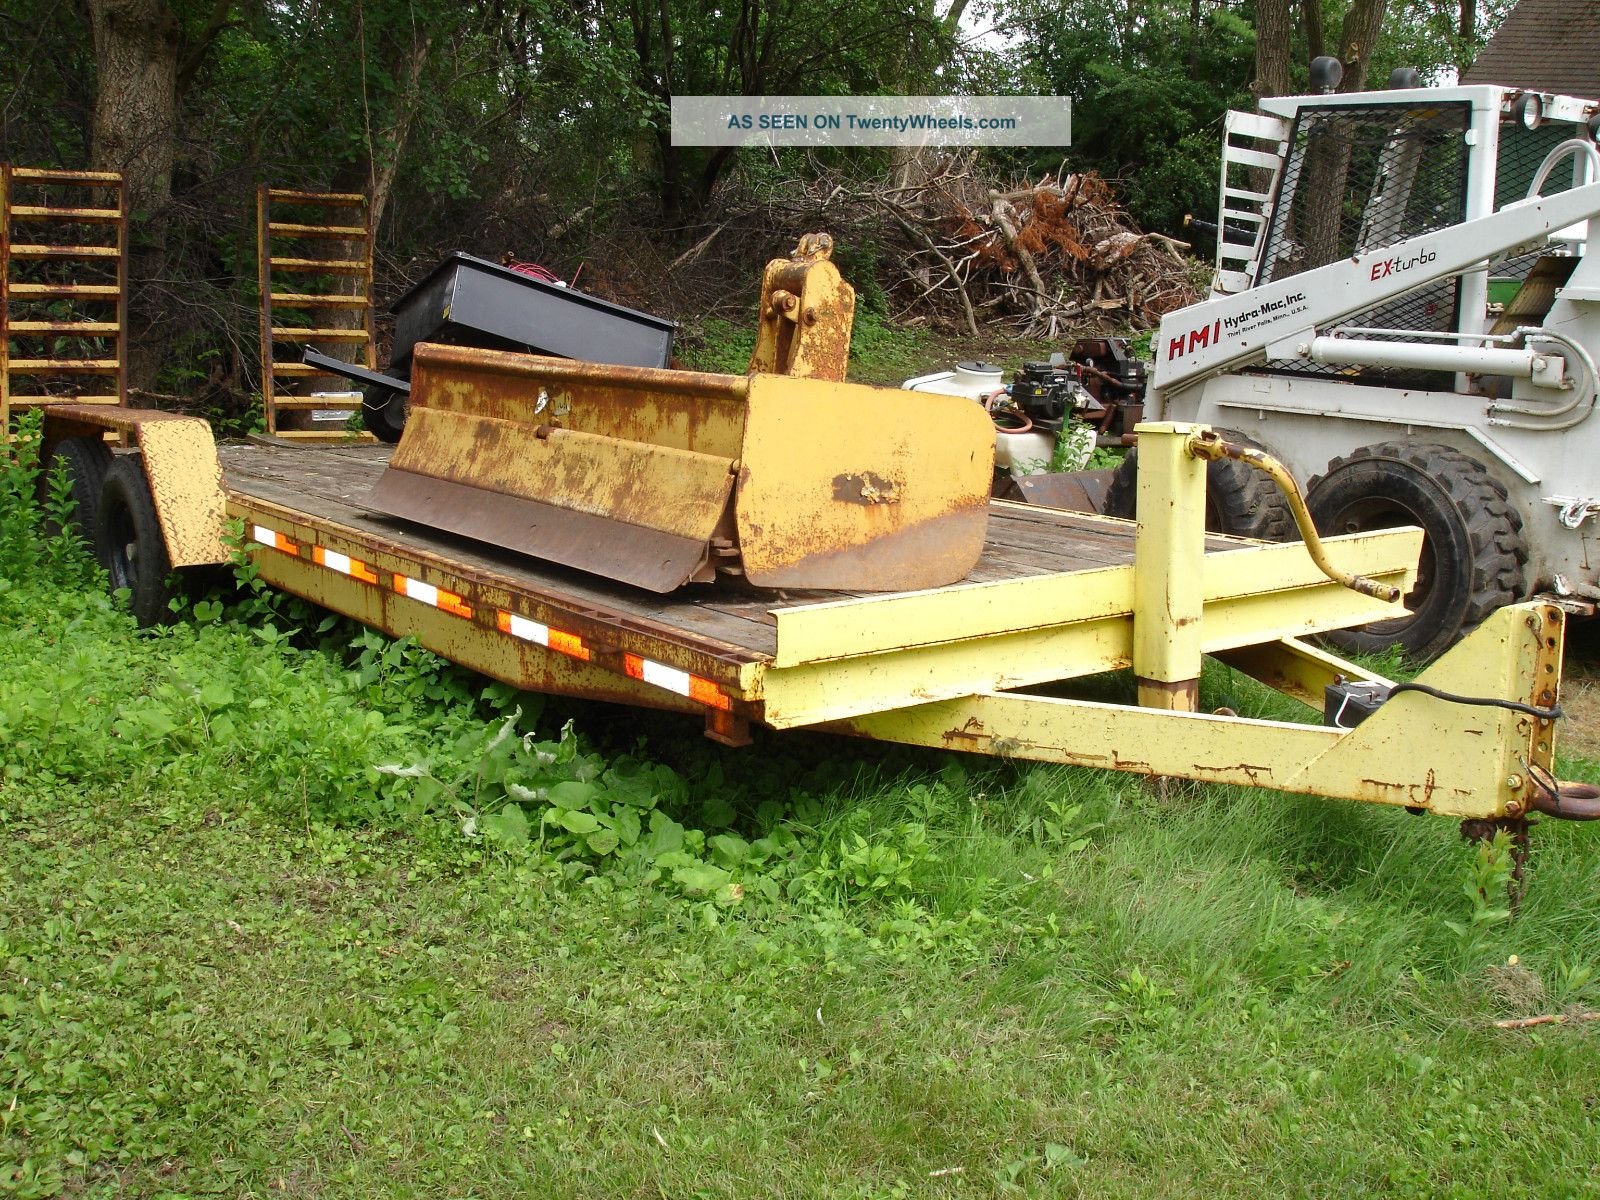 Heavy Duty Flat Bed Construction Trailer 21 Feet With Fold Down Ramps Wood Deck Other photo